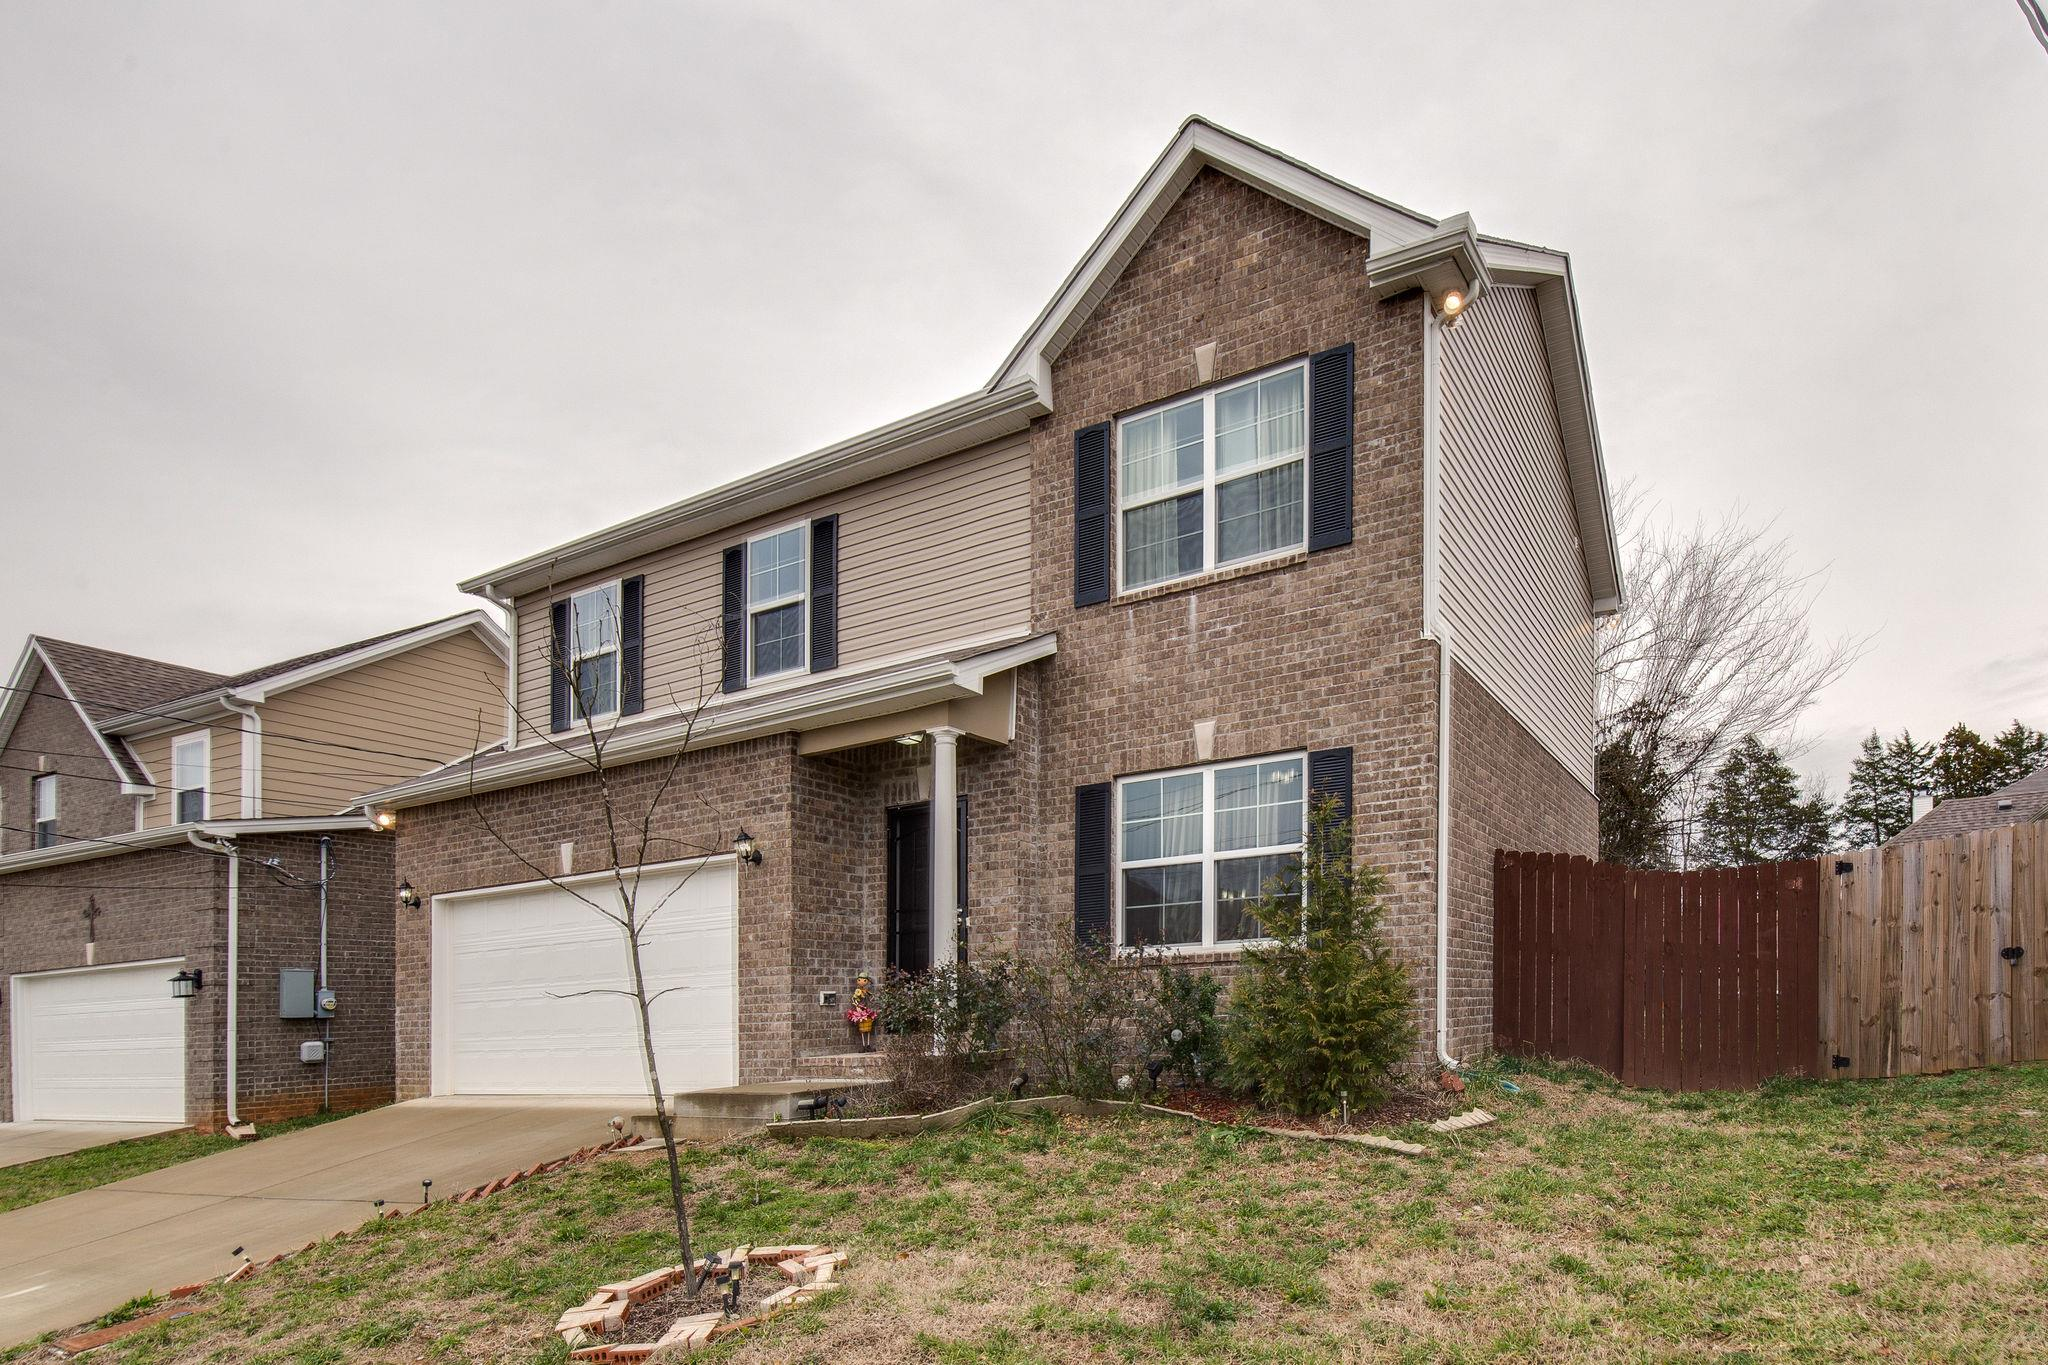 3861 Swan Ridge Dr, Nashville-Antioch in Davidson County County, TN 37013 Home for Sale